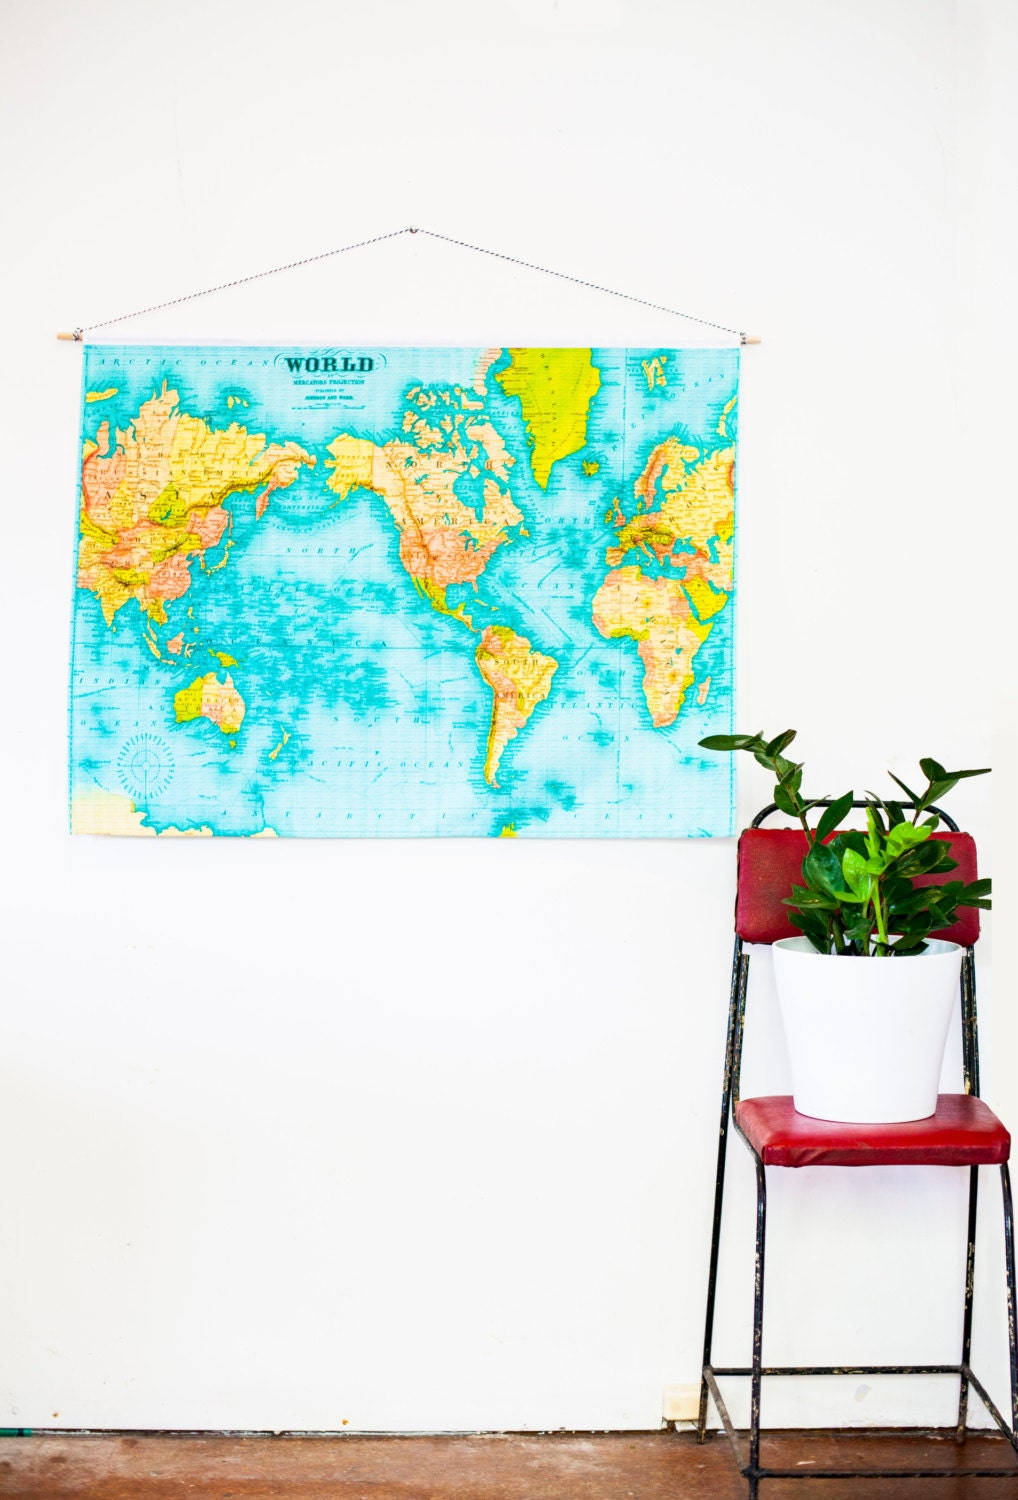 World map wall hanging education chart 86cm34inches x zoom gumiabroncs Image collections